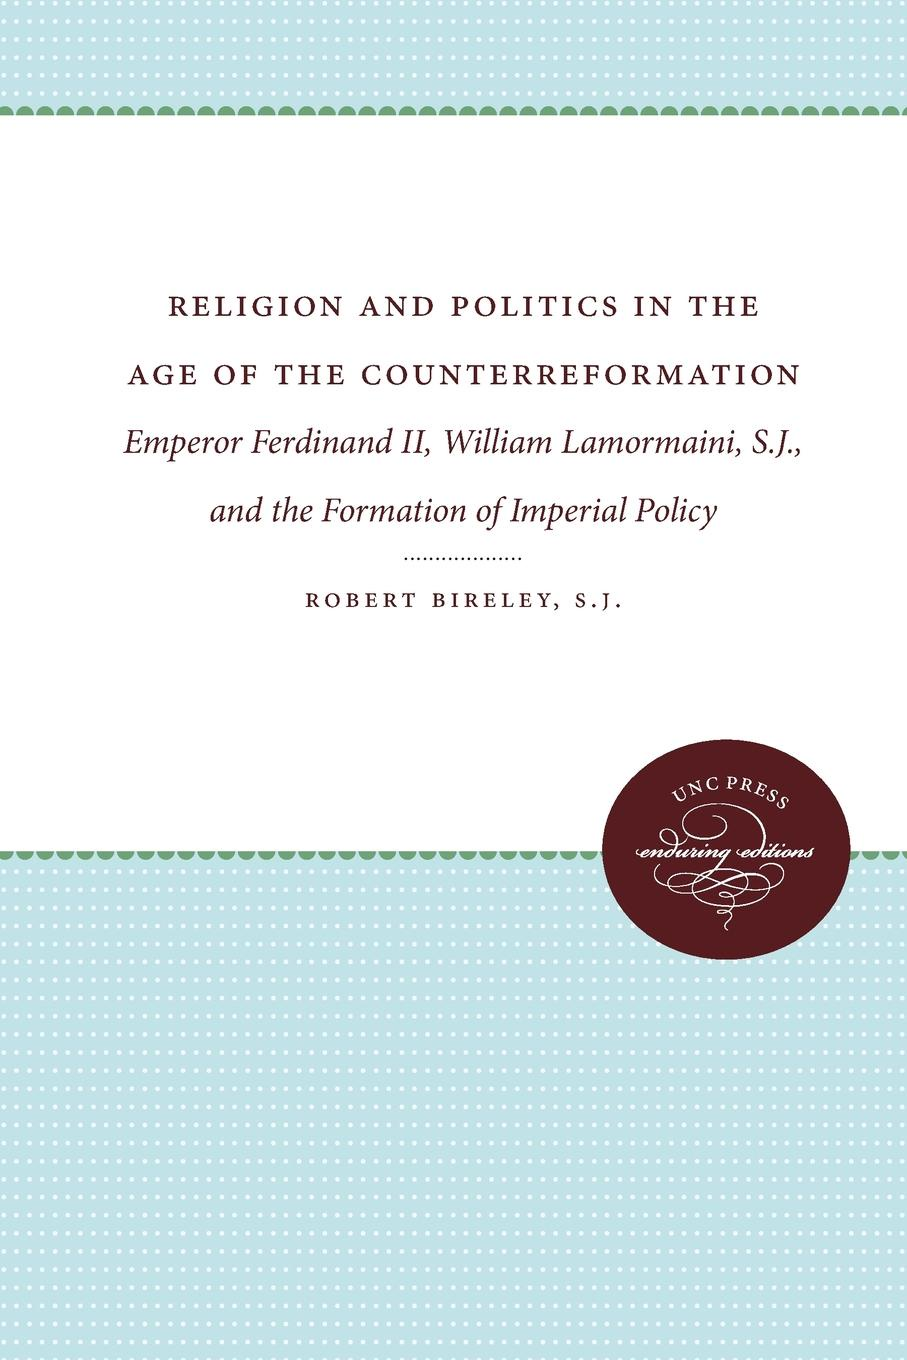 Robert S. J. Bireley Religion and Politics in the Age of the Counterreformation. Emperor Ferdinand II, William Lamormaini, S.J., and the Formation of the Imperial Policy dilan prasad harsha senanayake the influence of the civil war on mahinda rajapaksa s foreign policy in sri lanka during 2005 2015